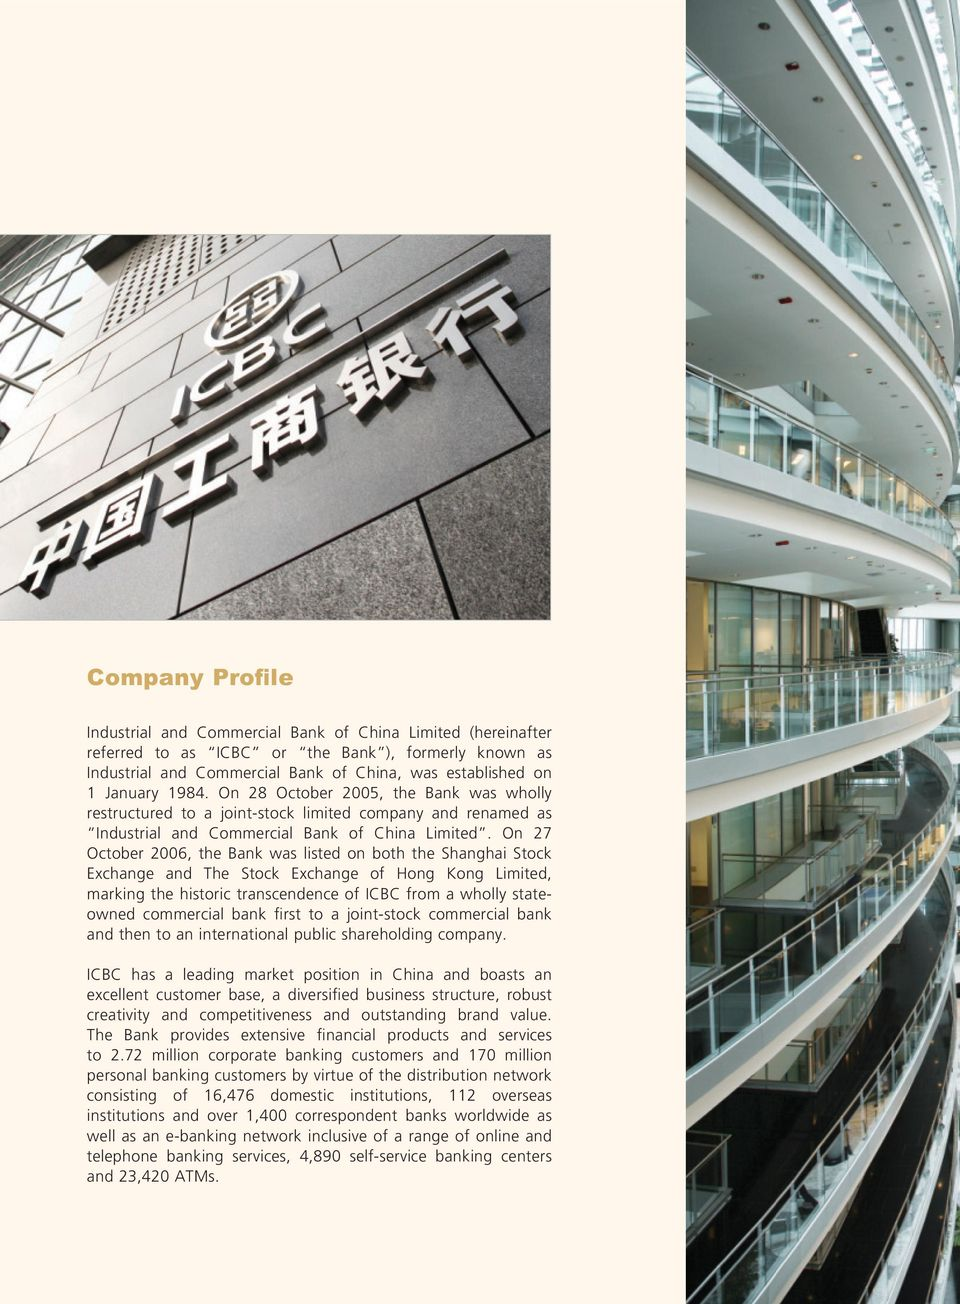 On 27 October 2006, the Bank was listed on both the Shanghai Stock Exchange and The Stock Exchange of Hong Kong Limited, marking the historic transcendence of ICBC from a wholly stateowned commercial